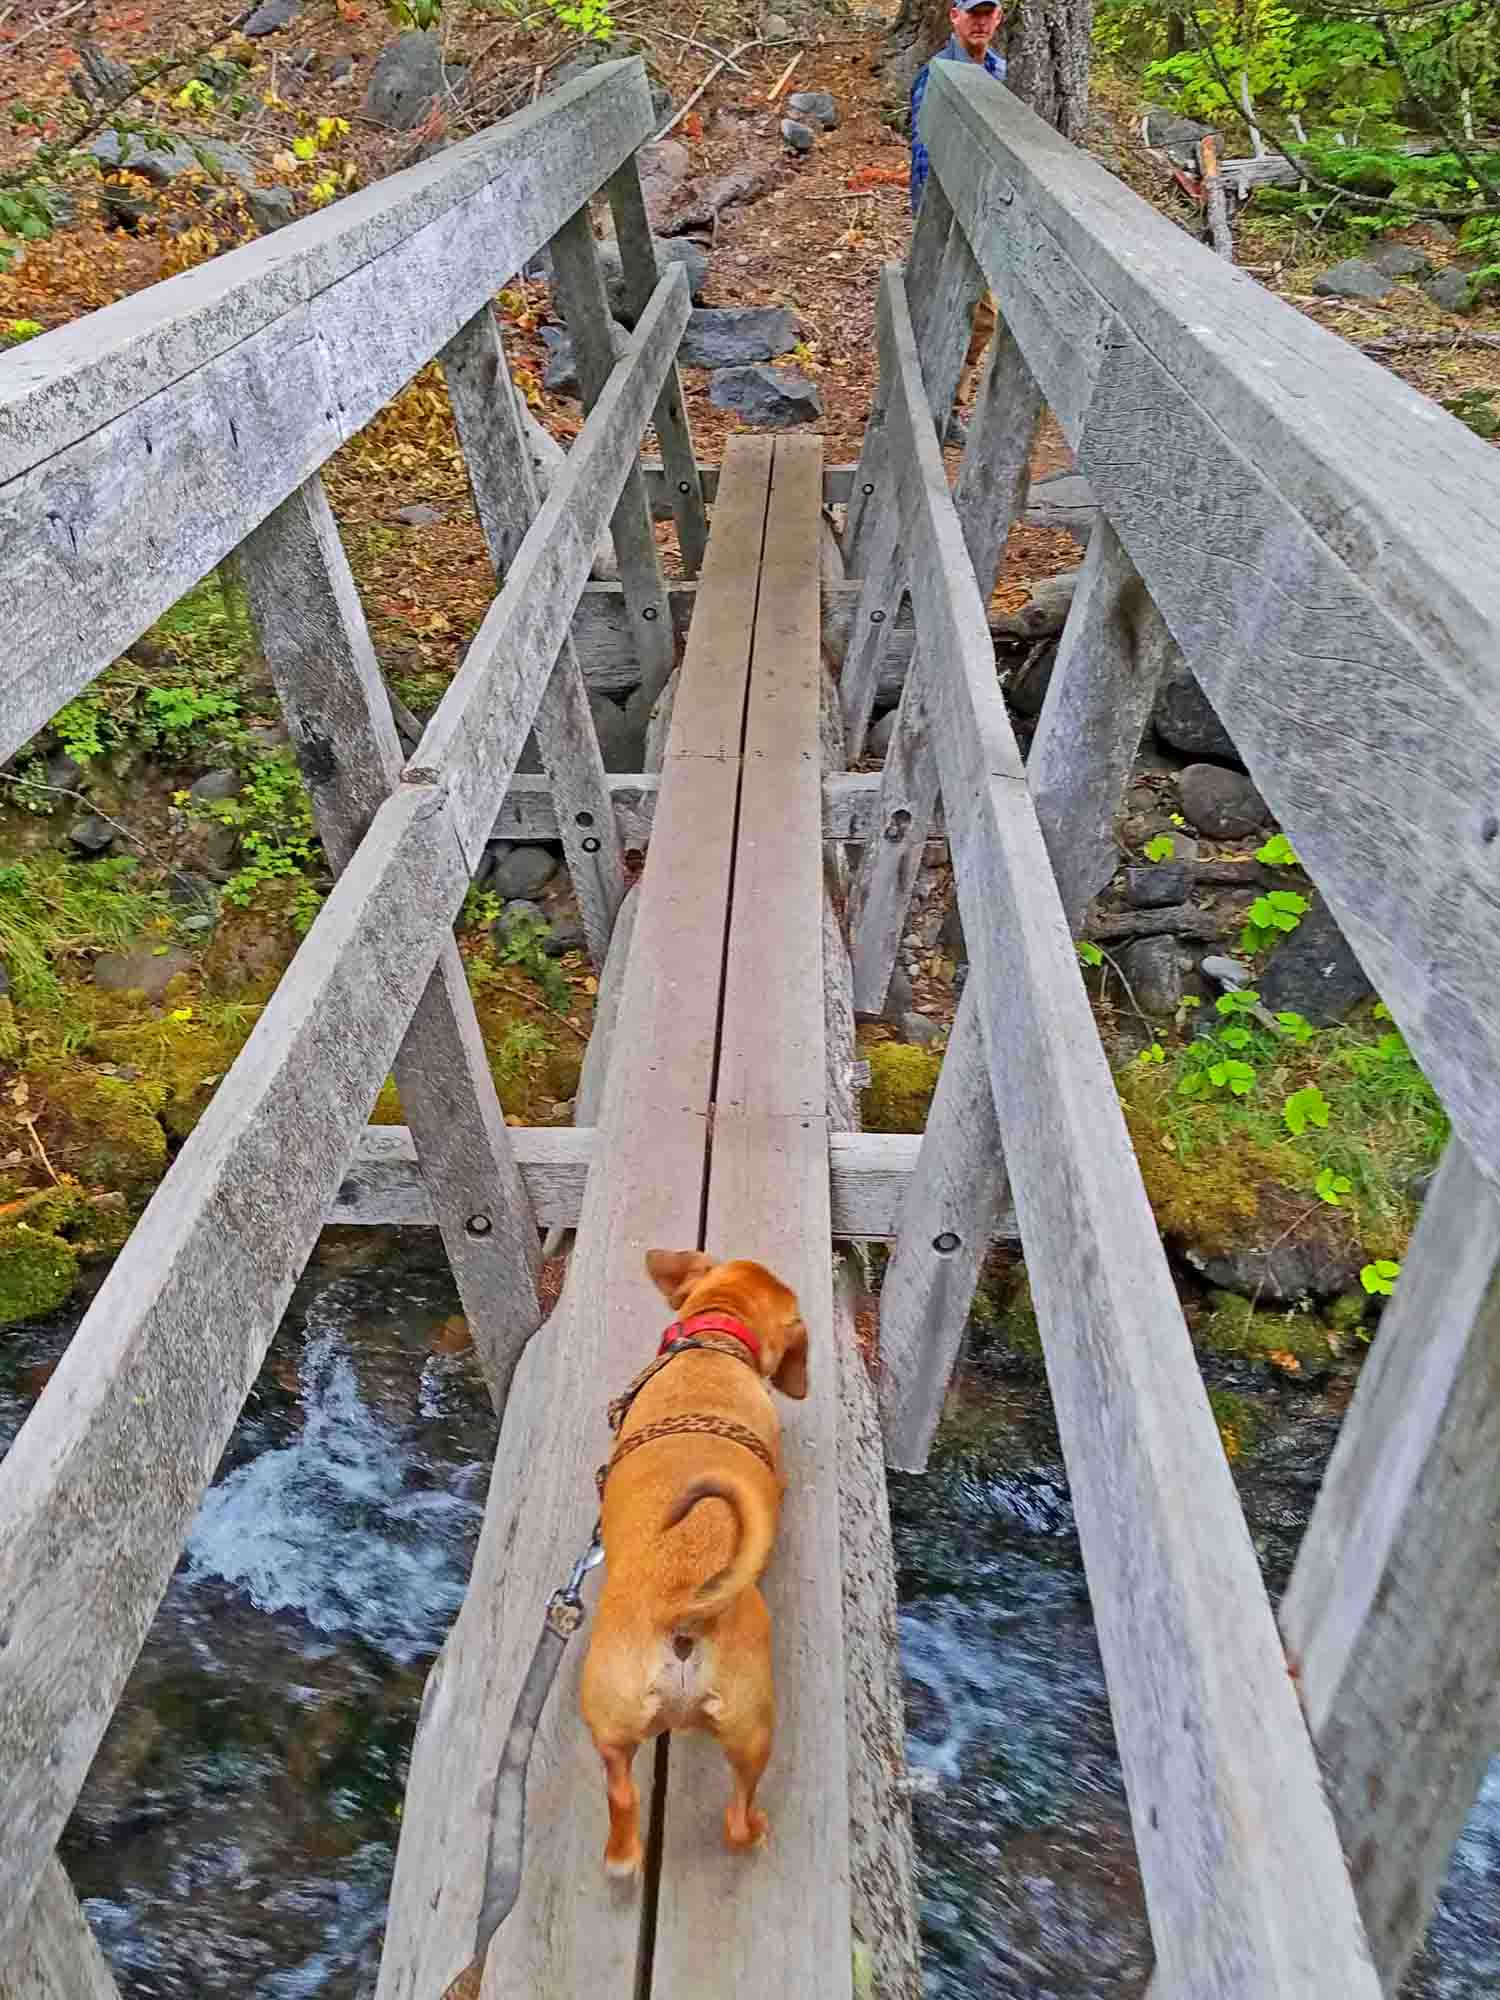 Brave little dog walks the plank.  Photo: (c) Barb Ayers, DogDiary.org